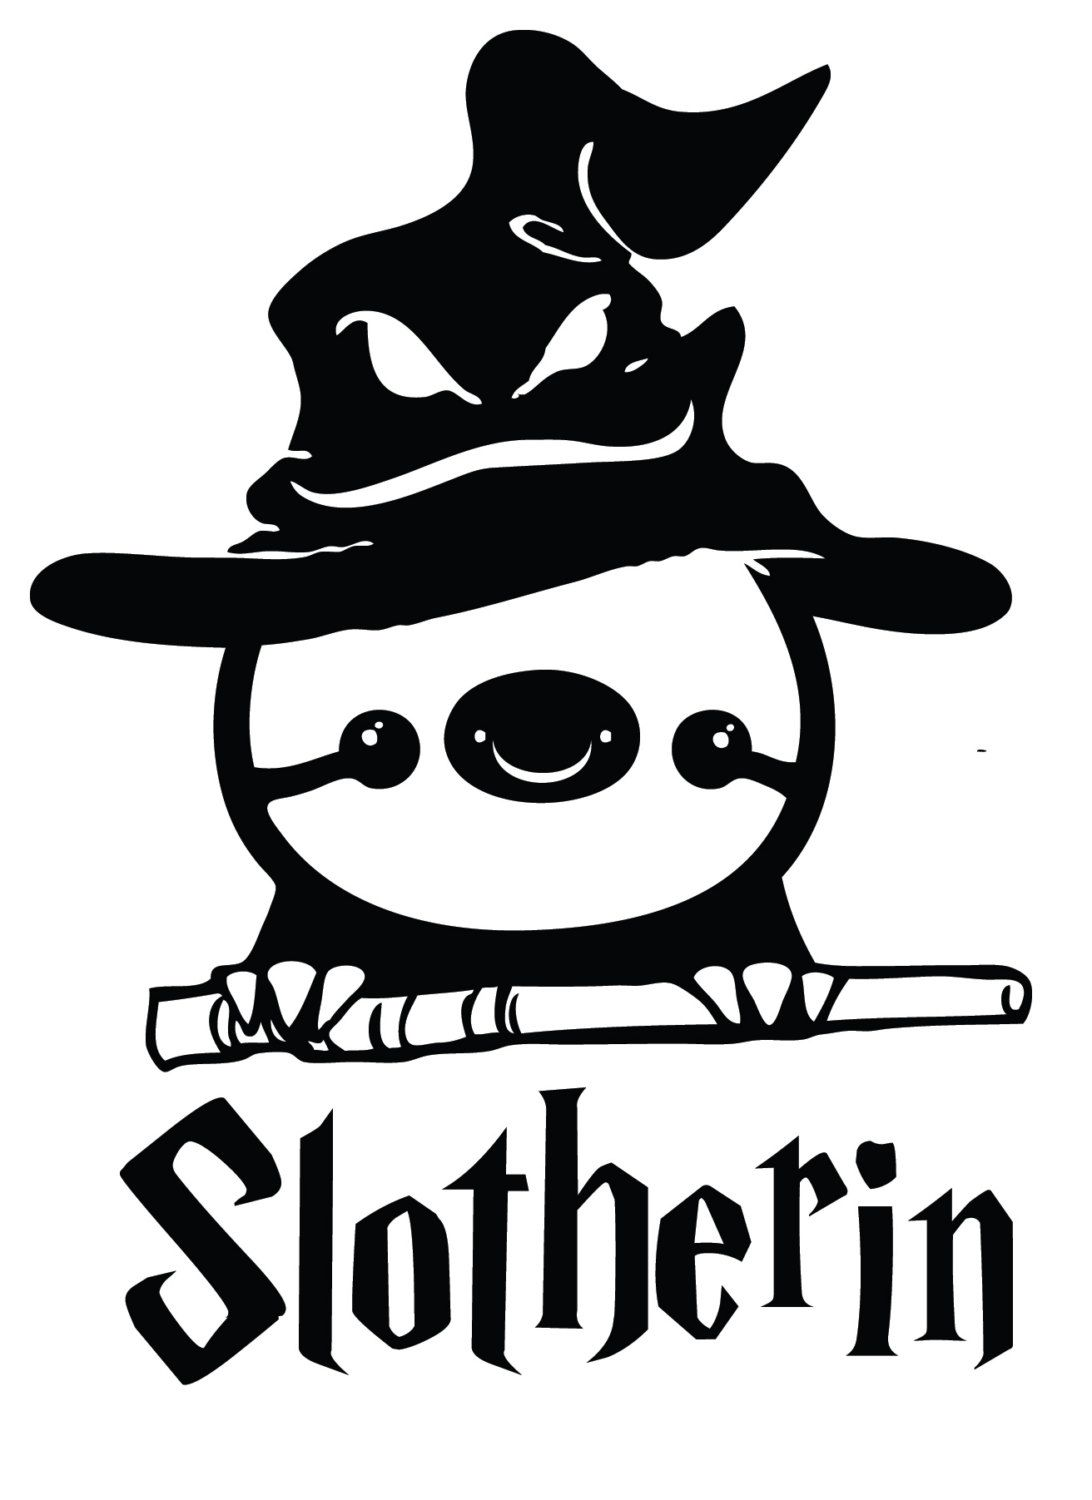 Funny harry potter sloth slotherin decal sticker by stickedecals